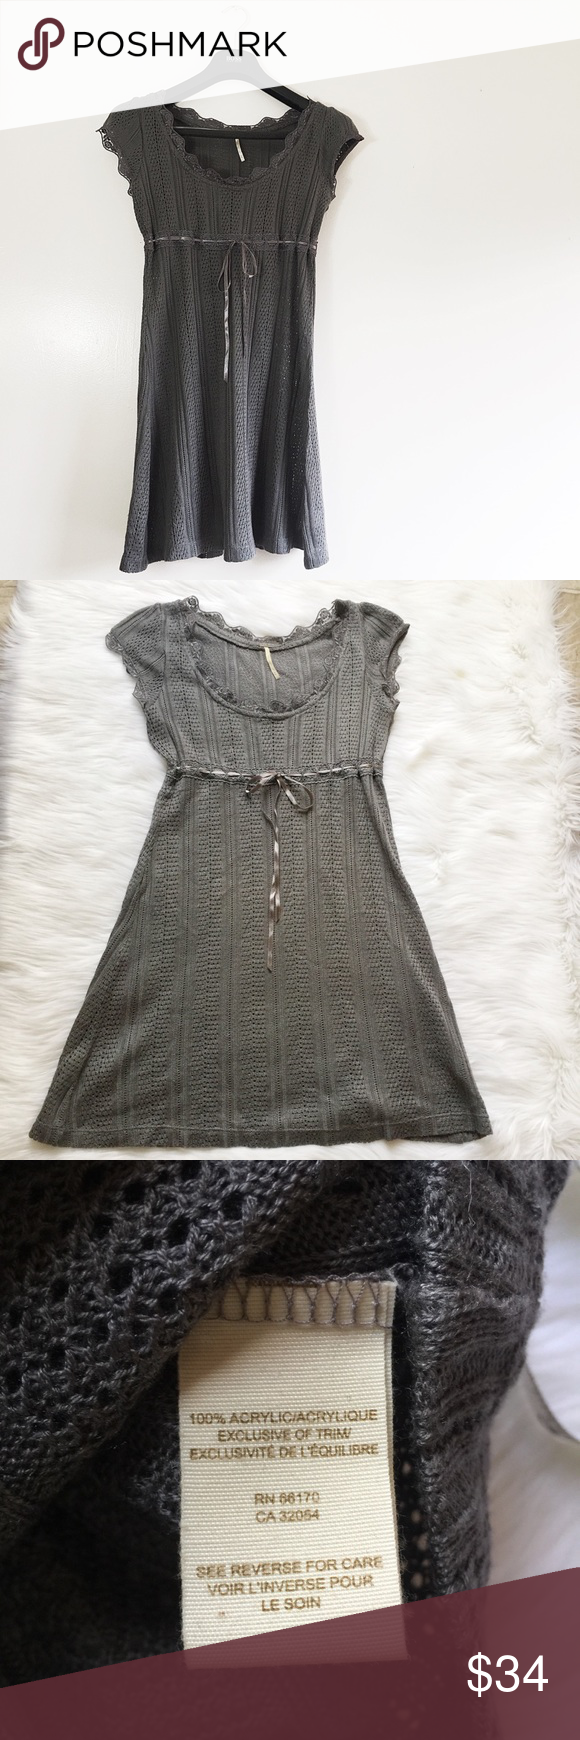 "Free People, Grey Knit Sweater Lace Synch Dress This beautiful sweater dress is perfectly adaptable for various occasions. While being elegant enough to wear semi formally, it's comfortable enough to be worn casually as well. The material is incredibly soft. The actual material is 100% acrylic. The built in slip has a very soft, almost silky feel. Measurements are as follows. Width: 26"" circumference (with room for stretch) Length: 33"". Bust: 36"". Measurements were taken while the dress was…"